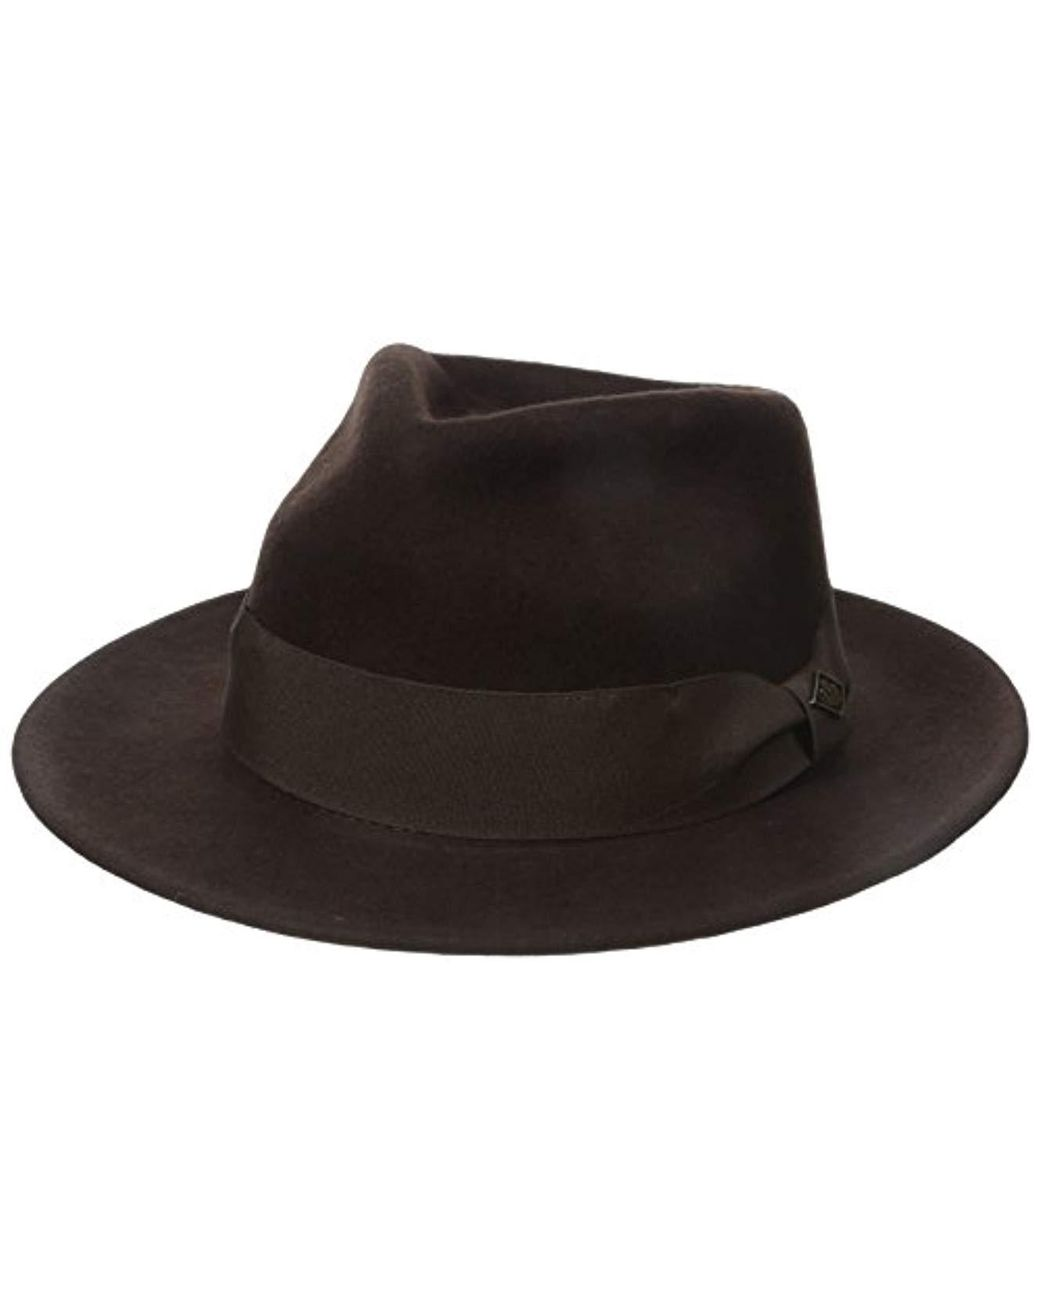 0093f9130 Men's Brown F. Fratelli Fedora